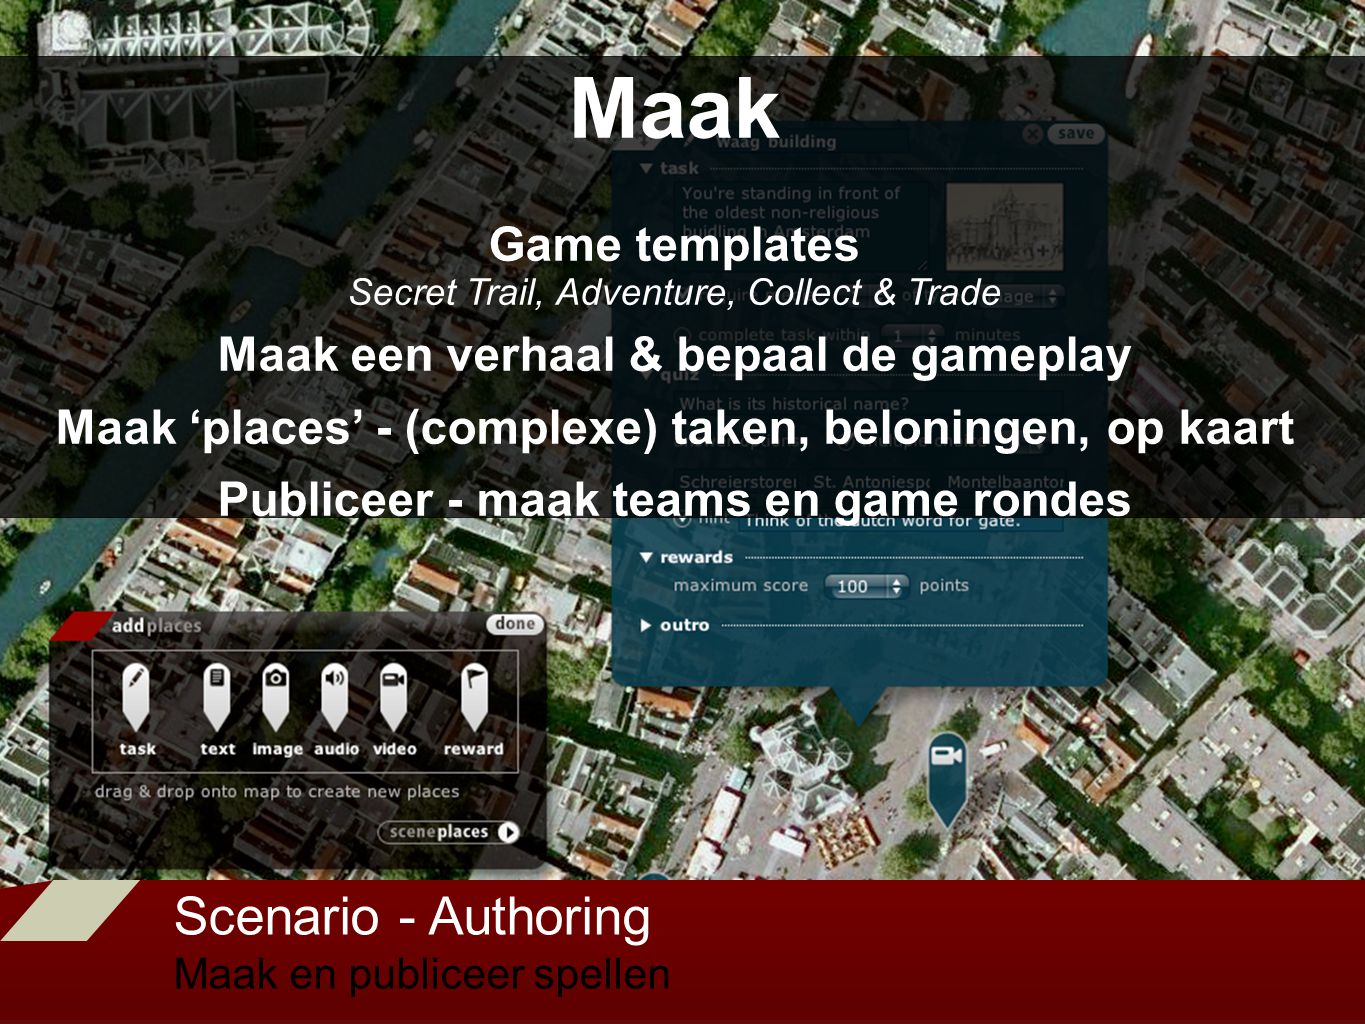 Scenario - Authoring Maak en publiceer spellen Maak Game templates Secret Trail, Adventure, Collect & Trade Maak een verhaal & bepaal de gameplay Maak 'places' - (complexe) taken, beloningen, op kaart Publiceer - maak teams en game rondes